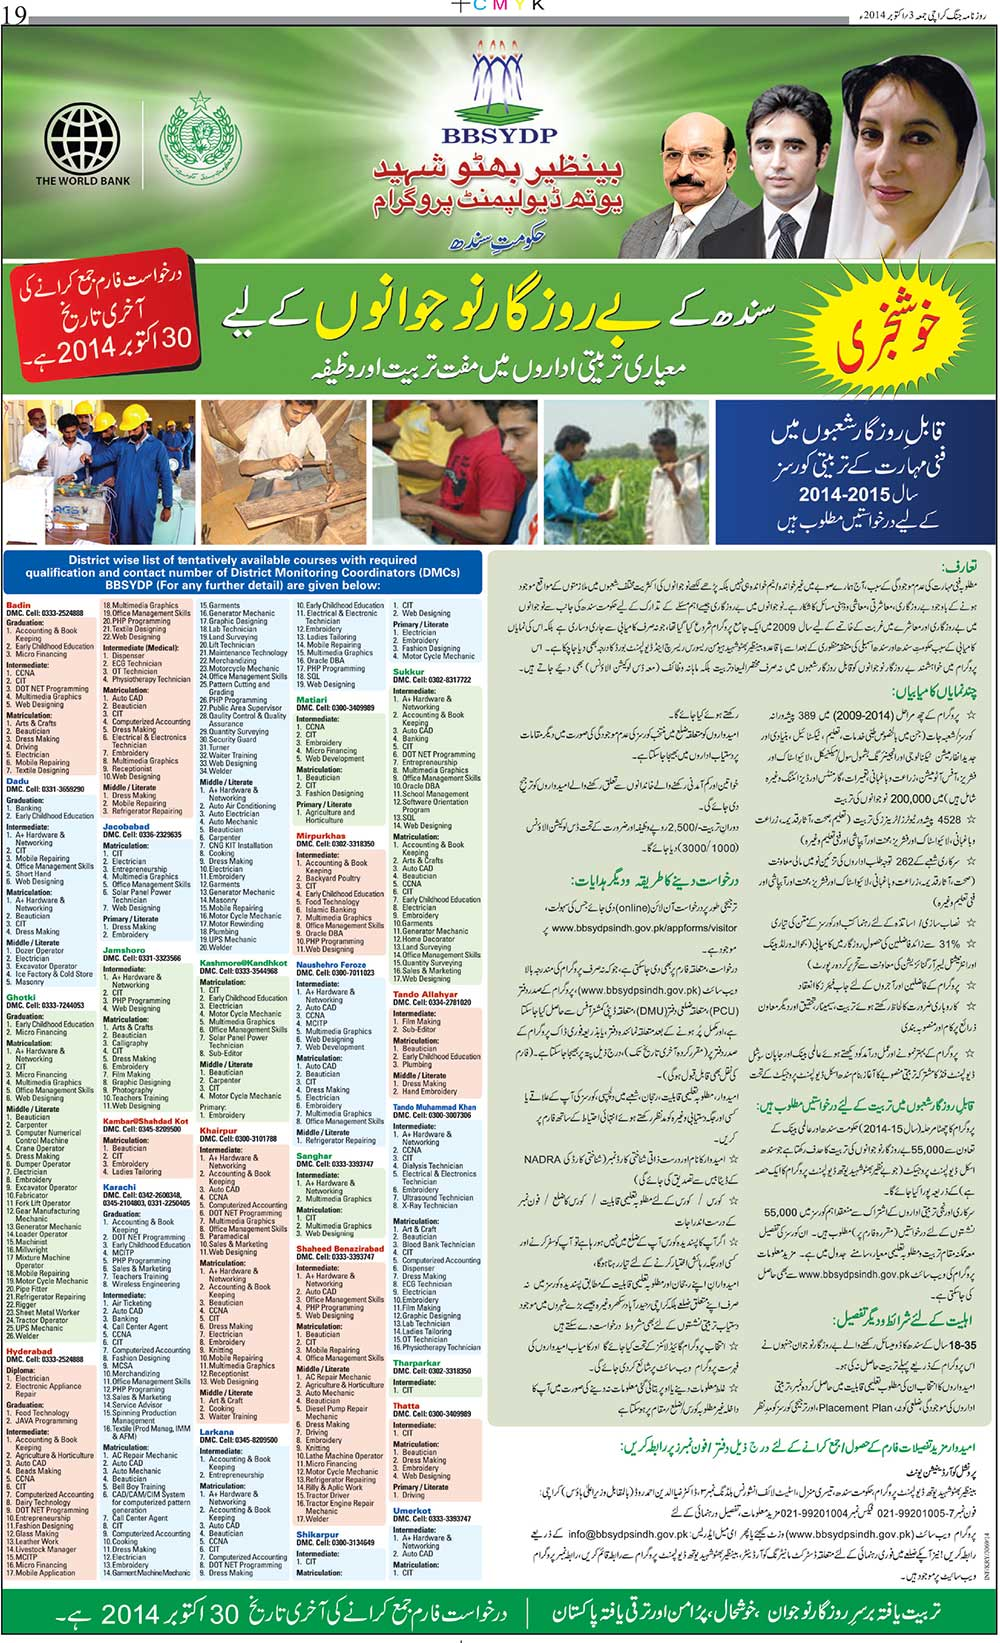 Benazir Youth Development Program Courses 2015 Matric, Inter, Diploma